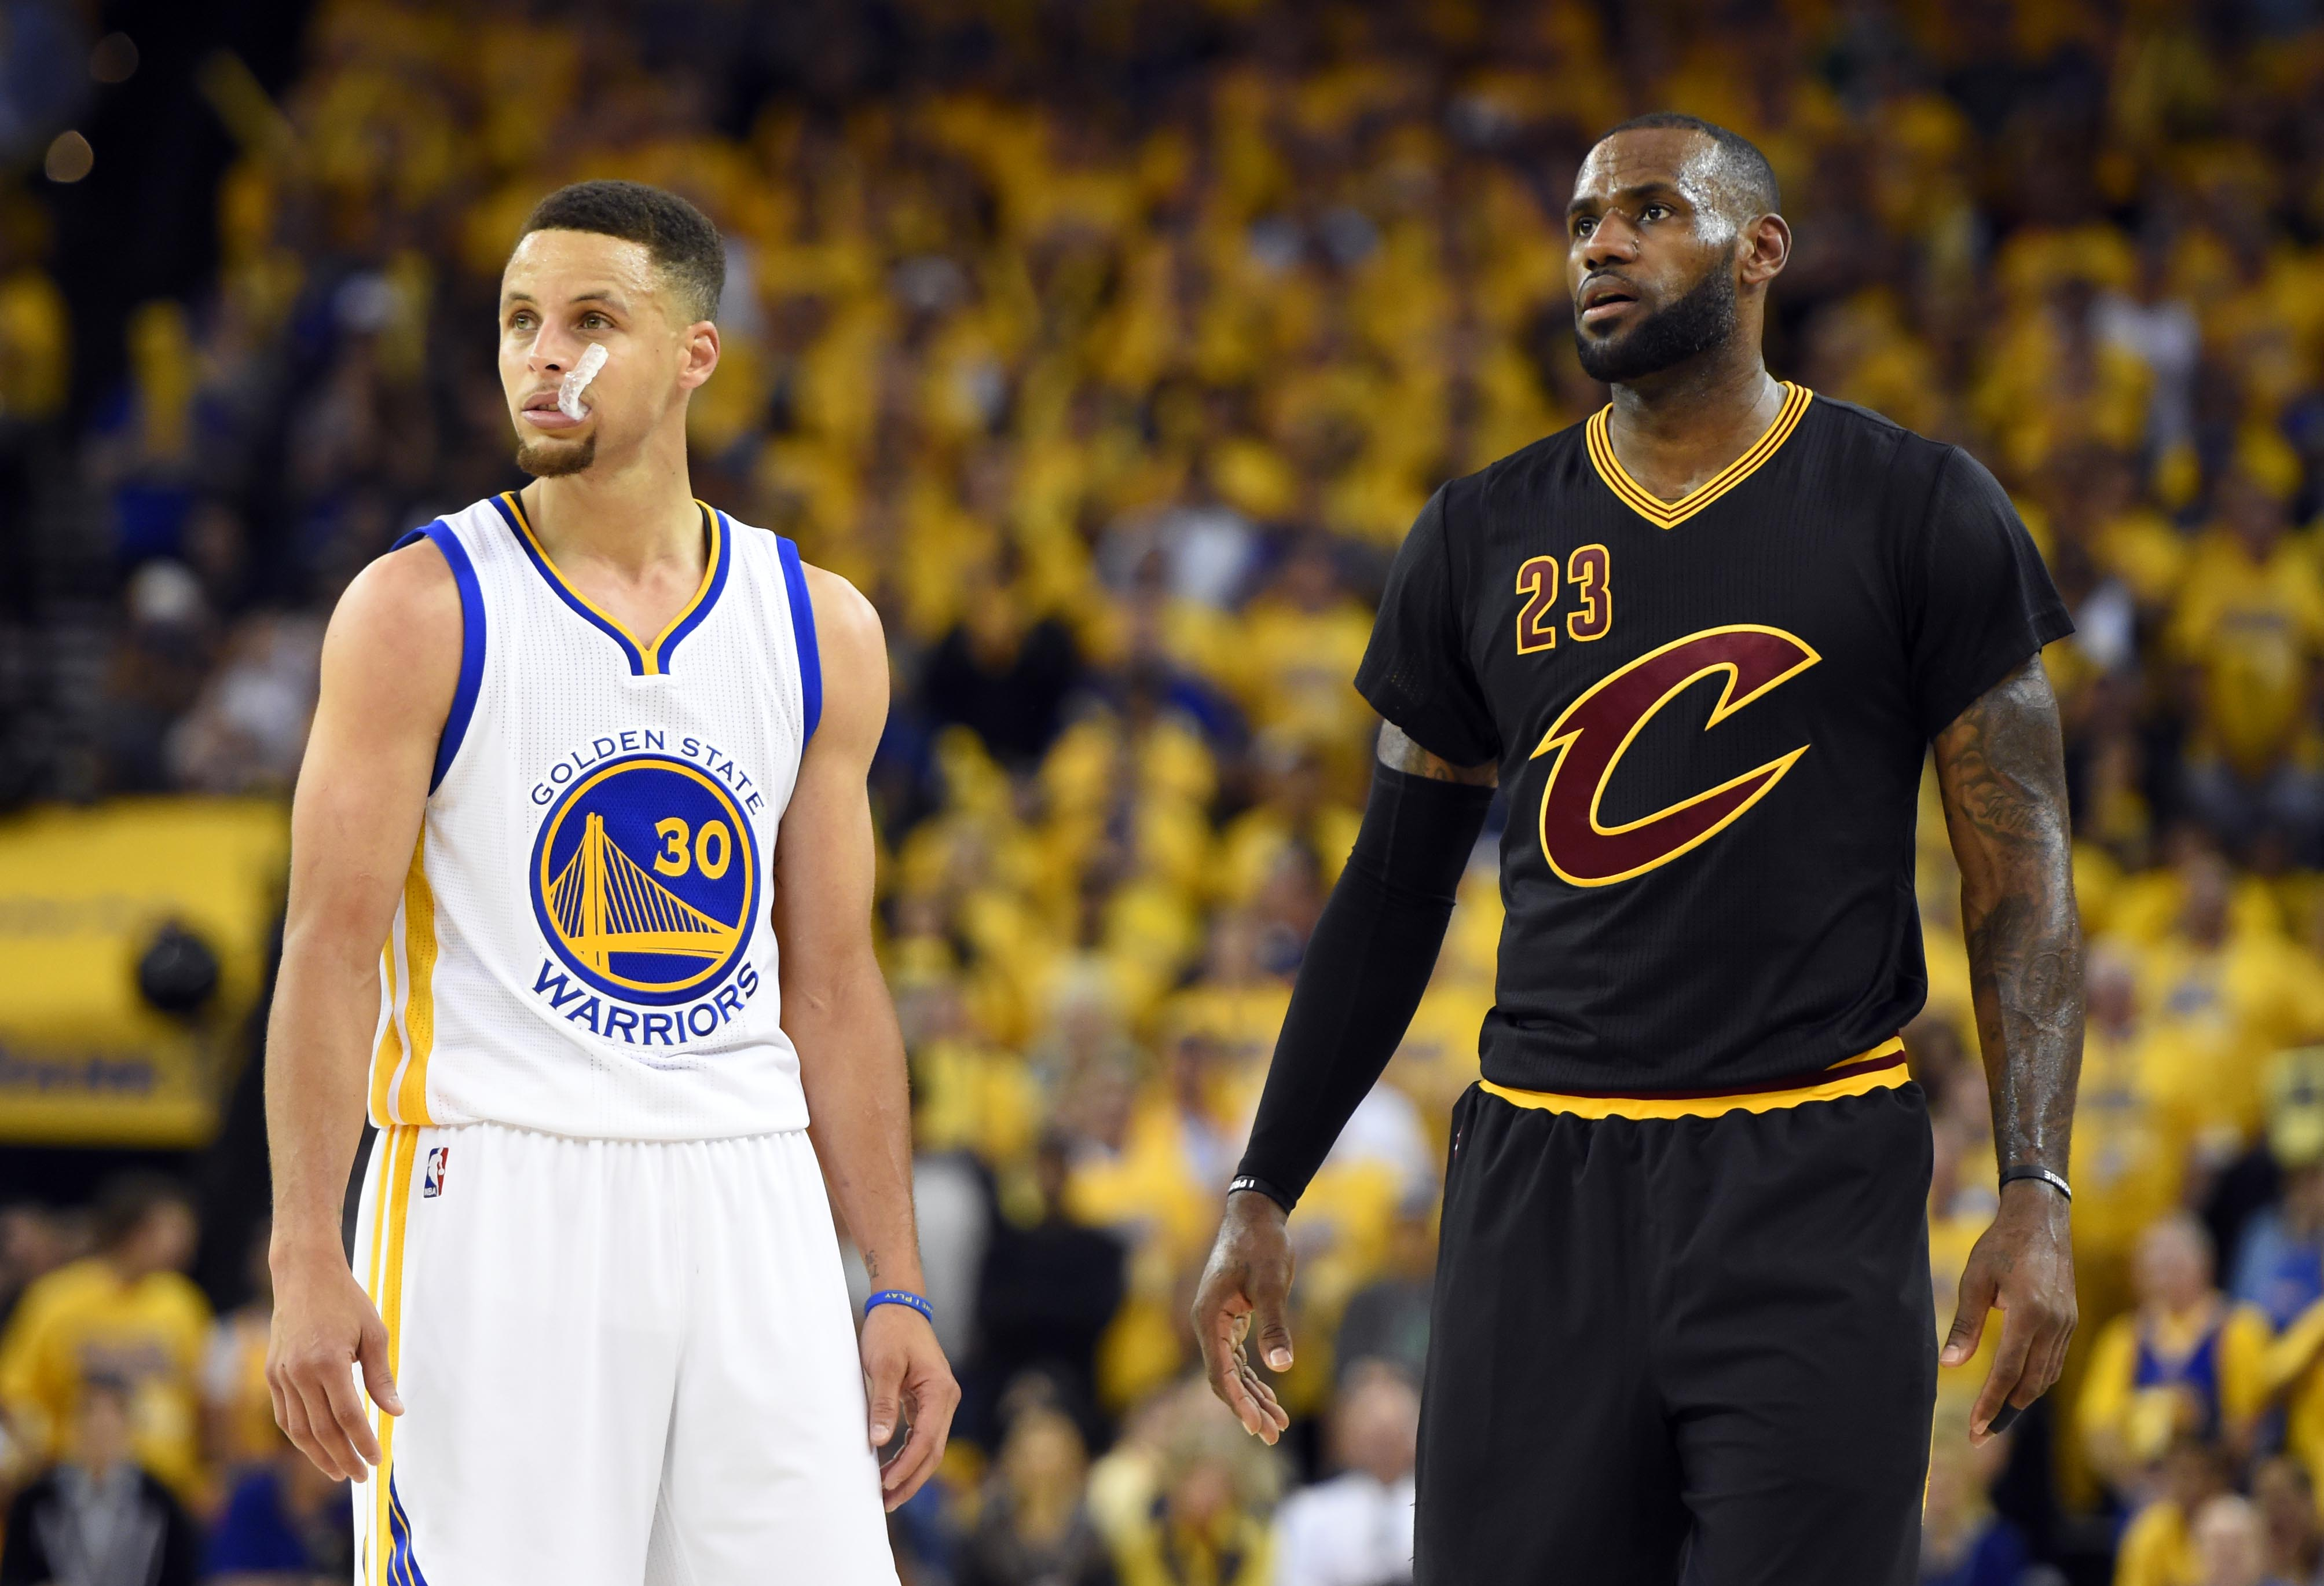 9339378-nba-finals-cleveland-cavaliers-at-golden-state-warriors